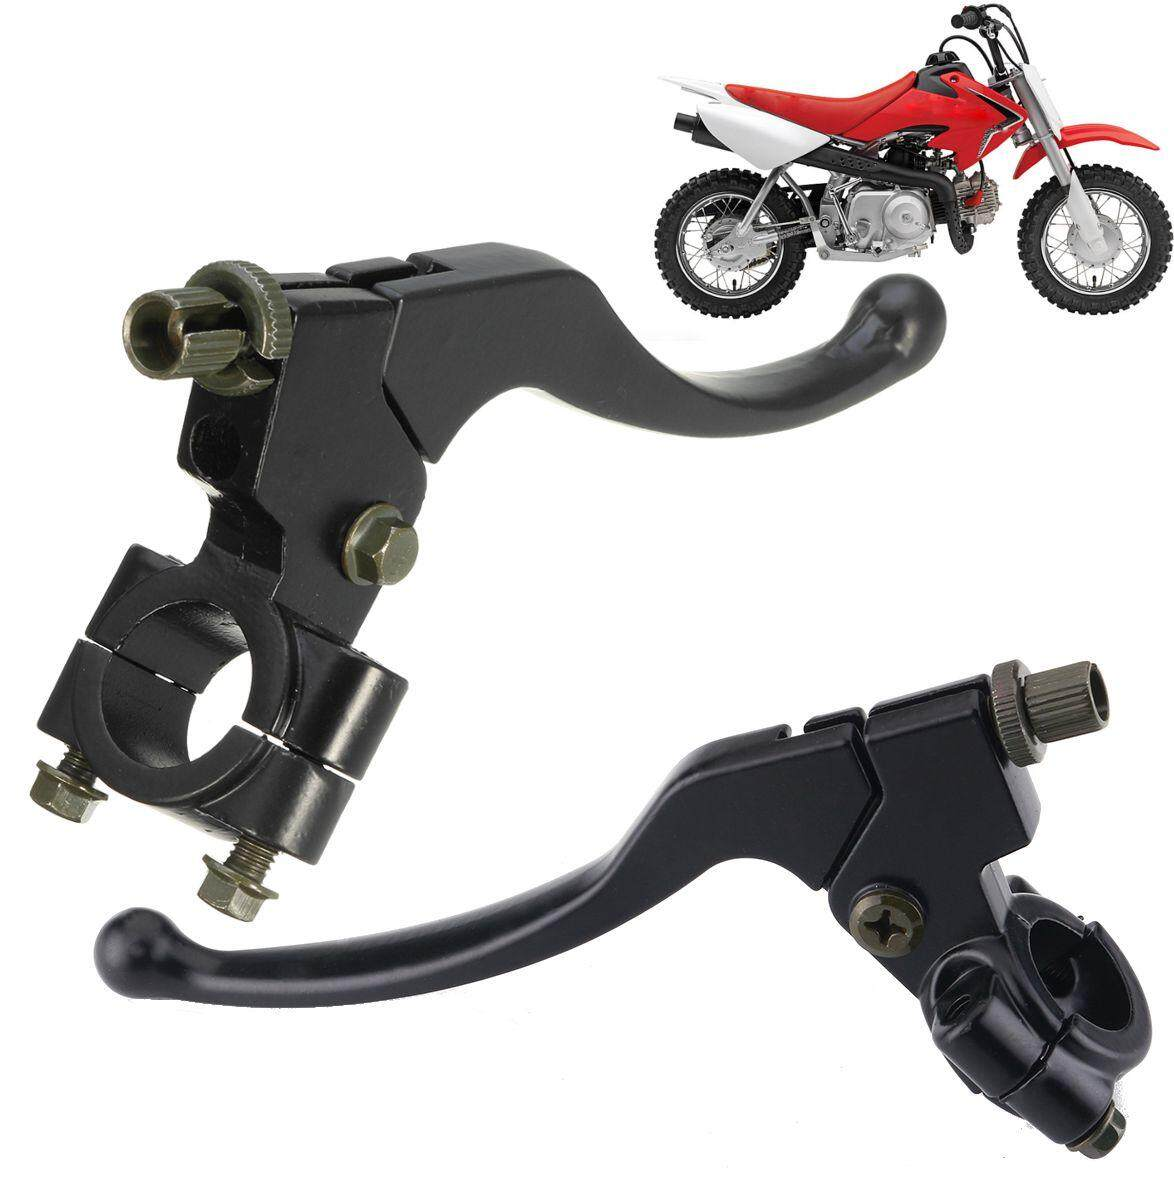 【free Shipping + Flash Deal】pair Clutch Brake Lever Set W/ Perch For Honda Crf50f Crf70f Crf80f Crf100f By Haldis.